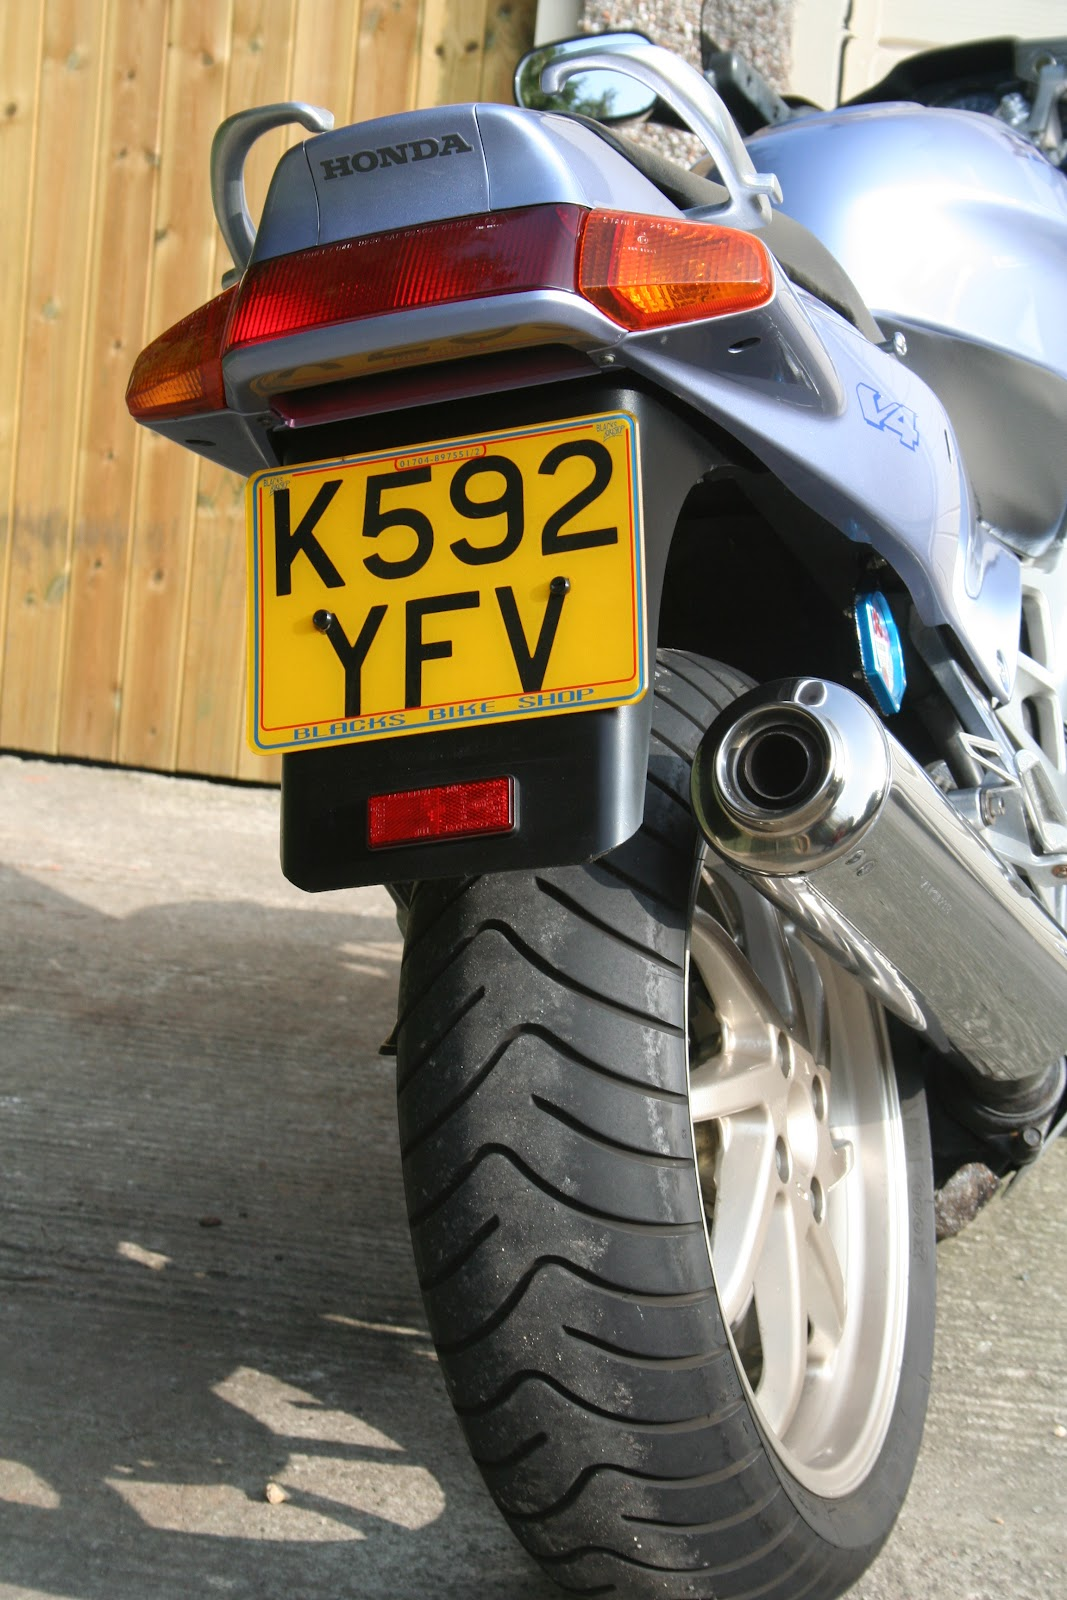 1998 Honda Vfr 750 Road Testhtml In Qytajogithubcom Source Code 1995 Fuel Tank Diagram Search Engine